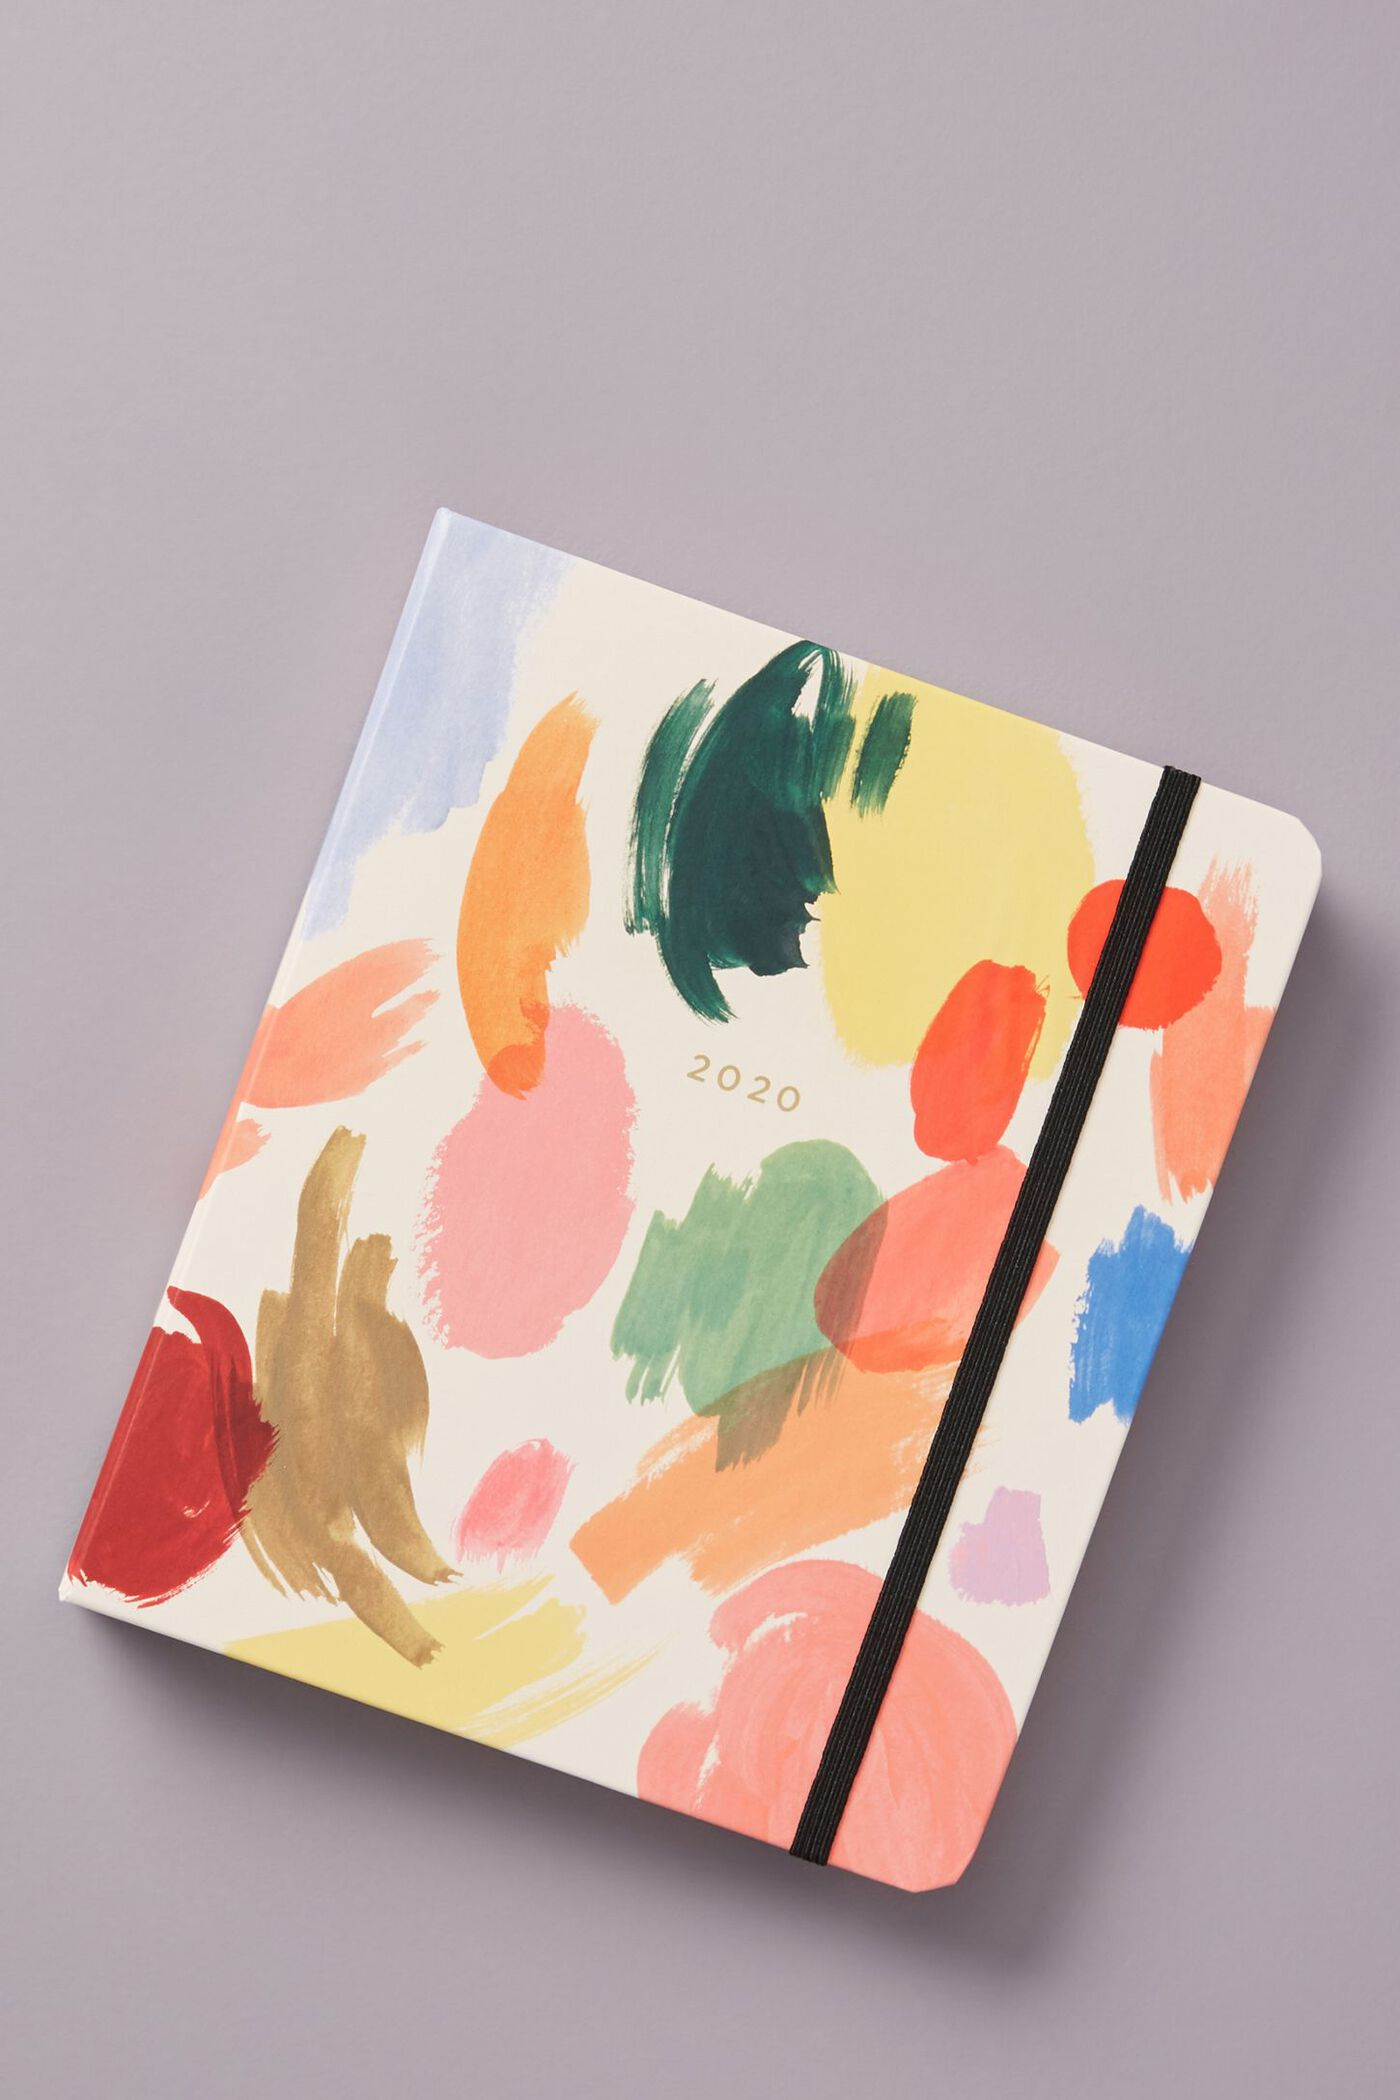 photo of a colorful 2020 planner